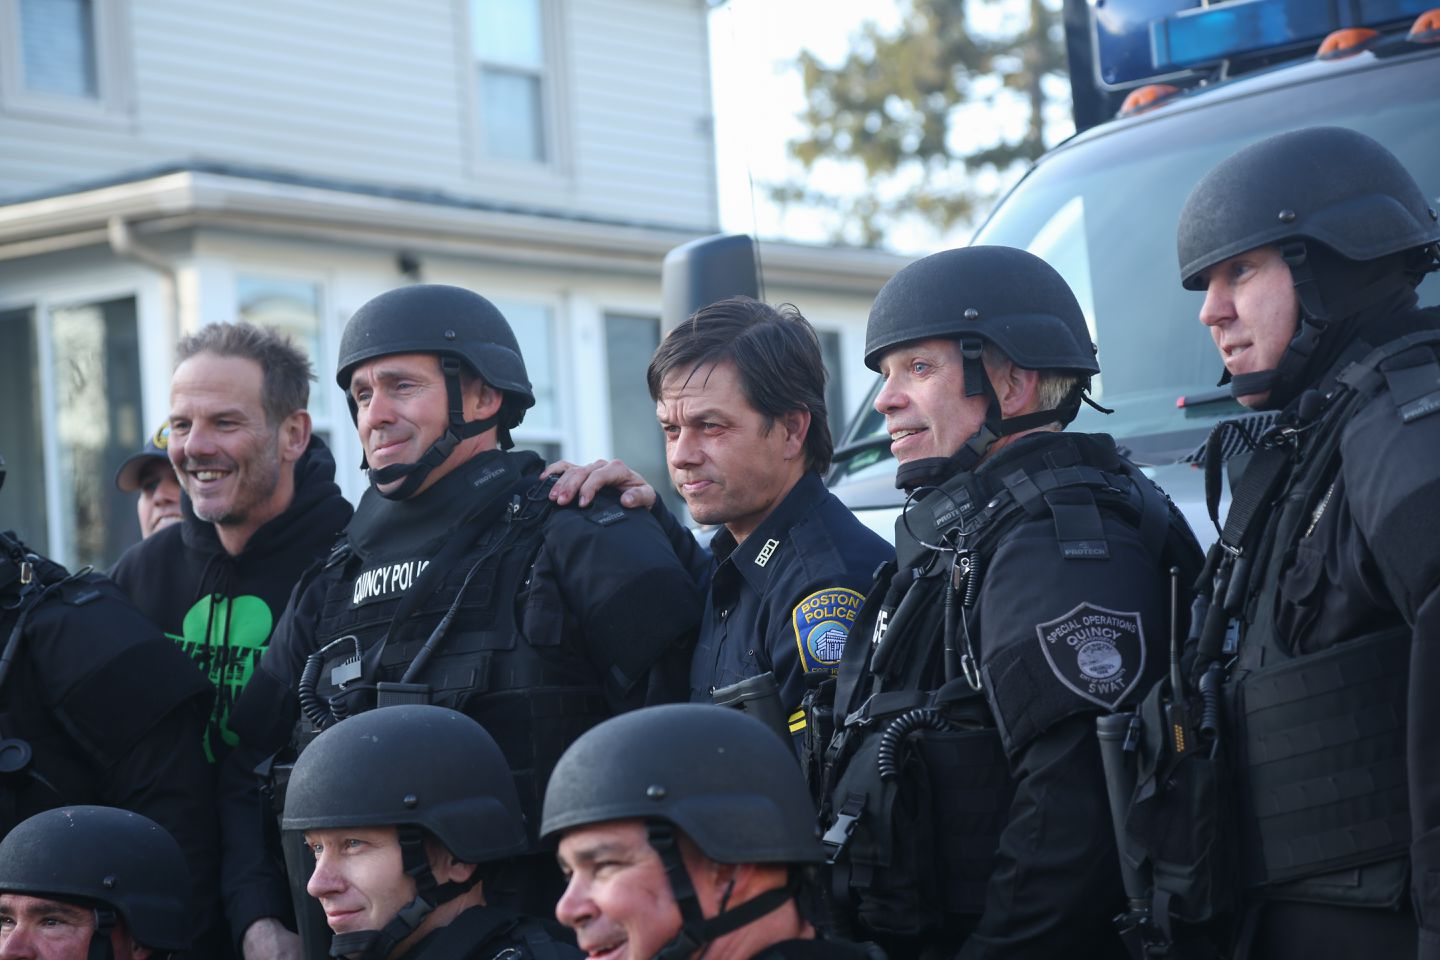 Wahlberg Dons Uniform On The Set Of Patriots Day The Boston Globe